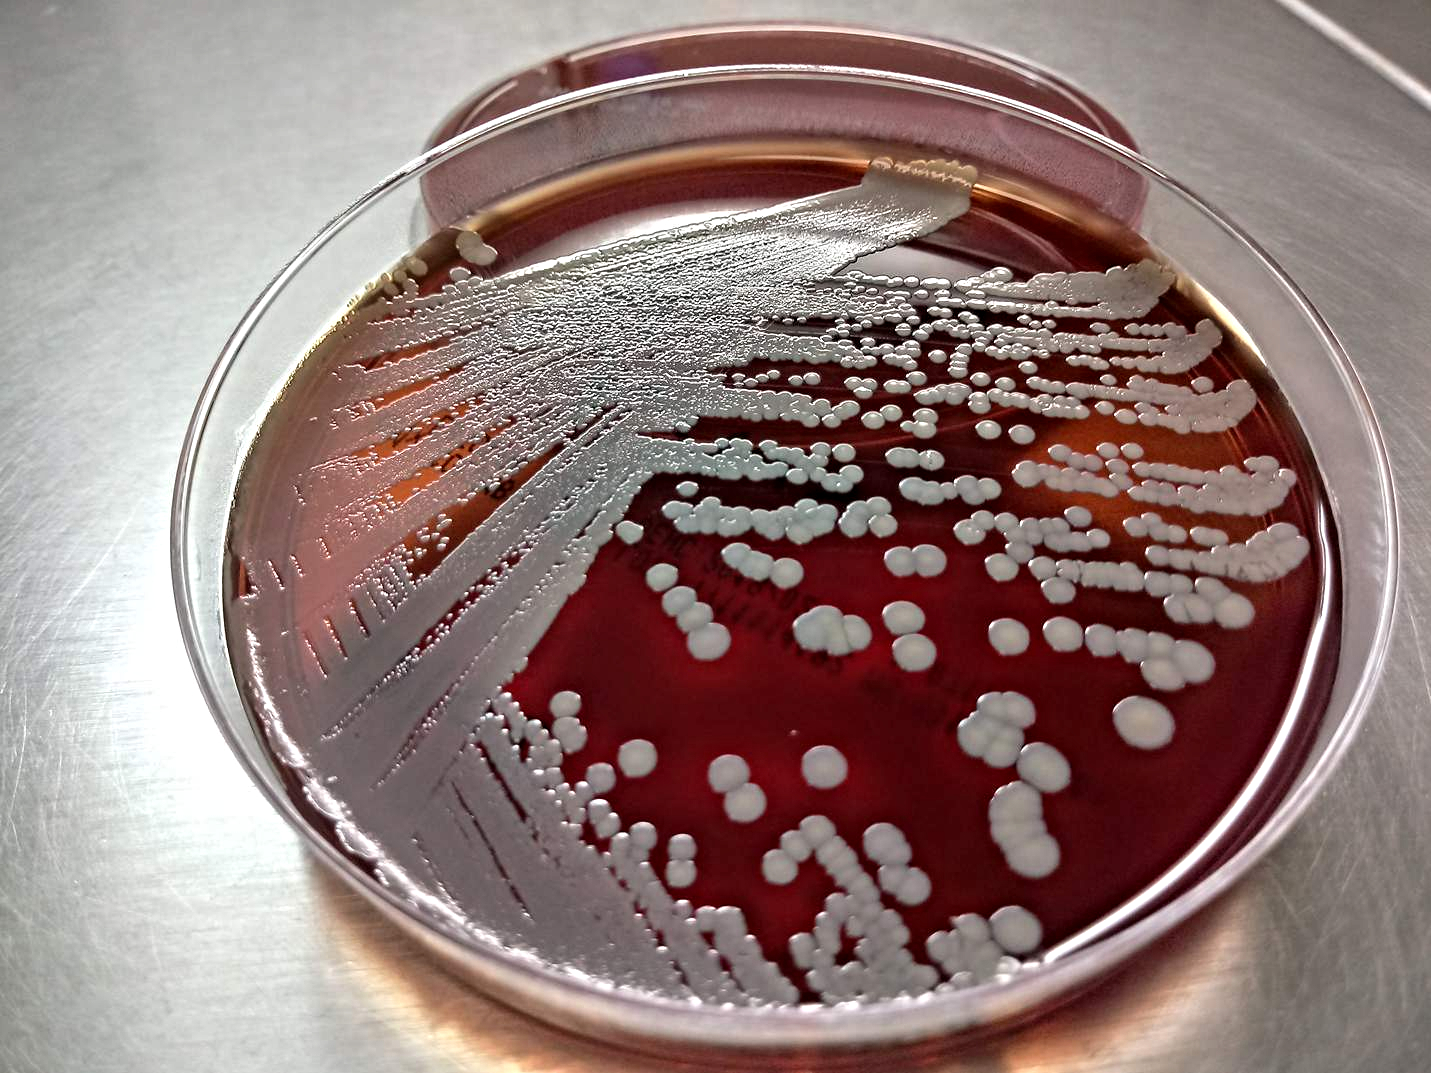 Staphylococcus aureus on Columbia CNA Agar with 5% Sheep Blood